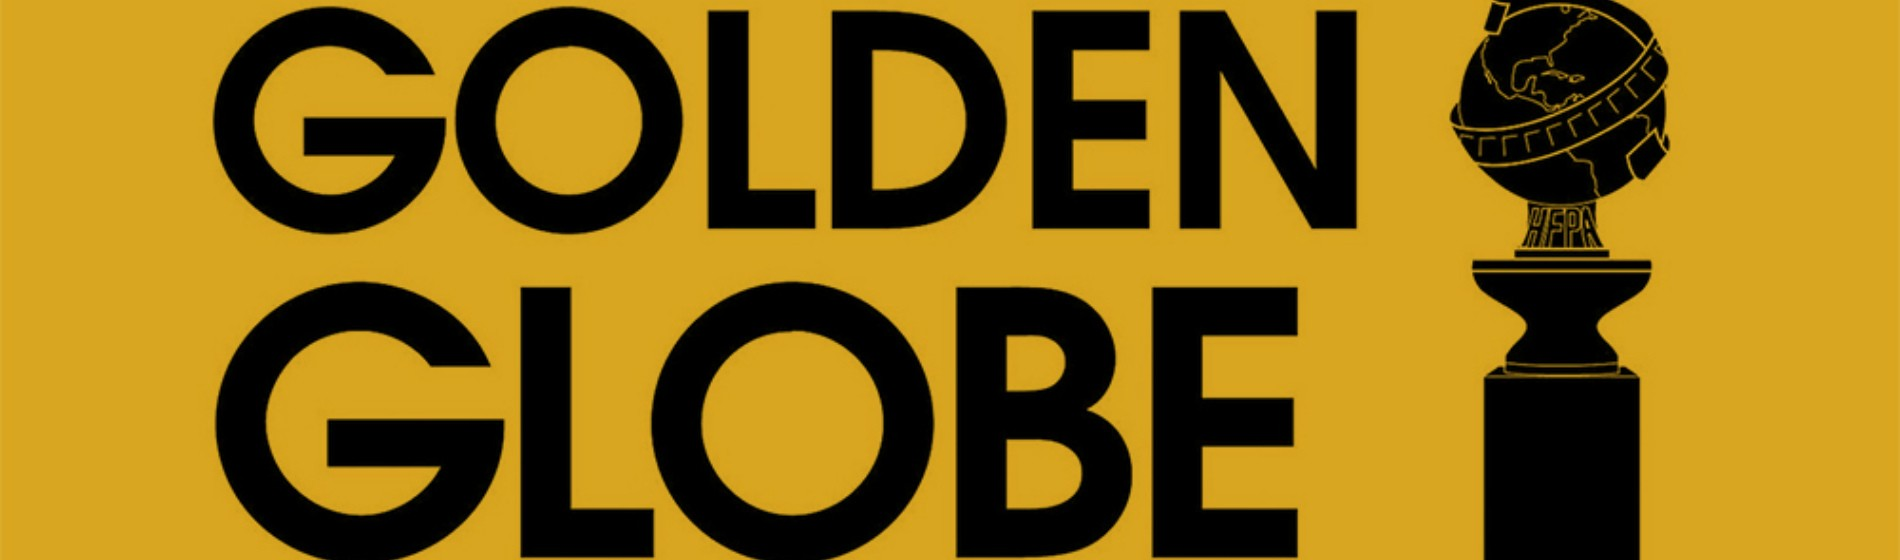 Golden Globes Logo 2019